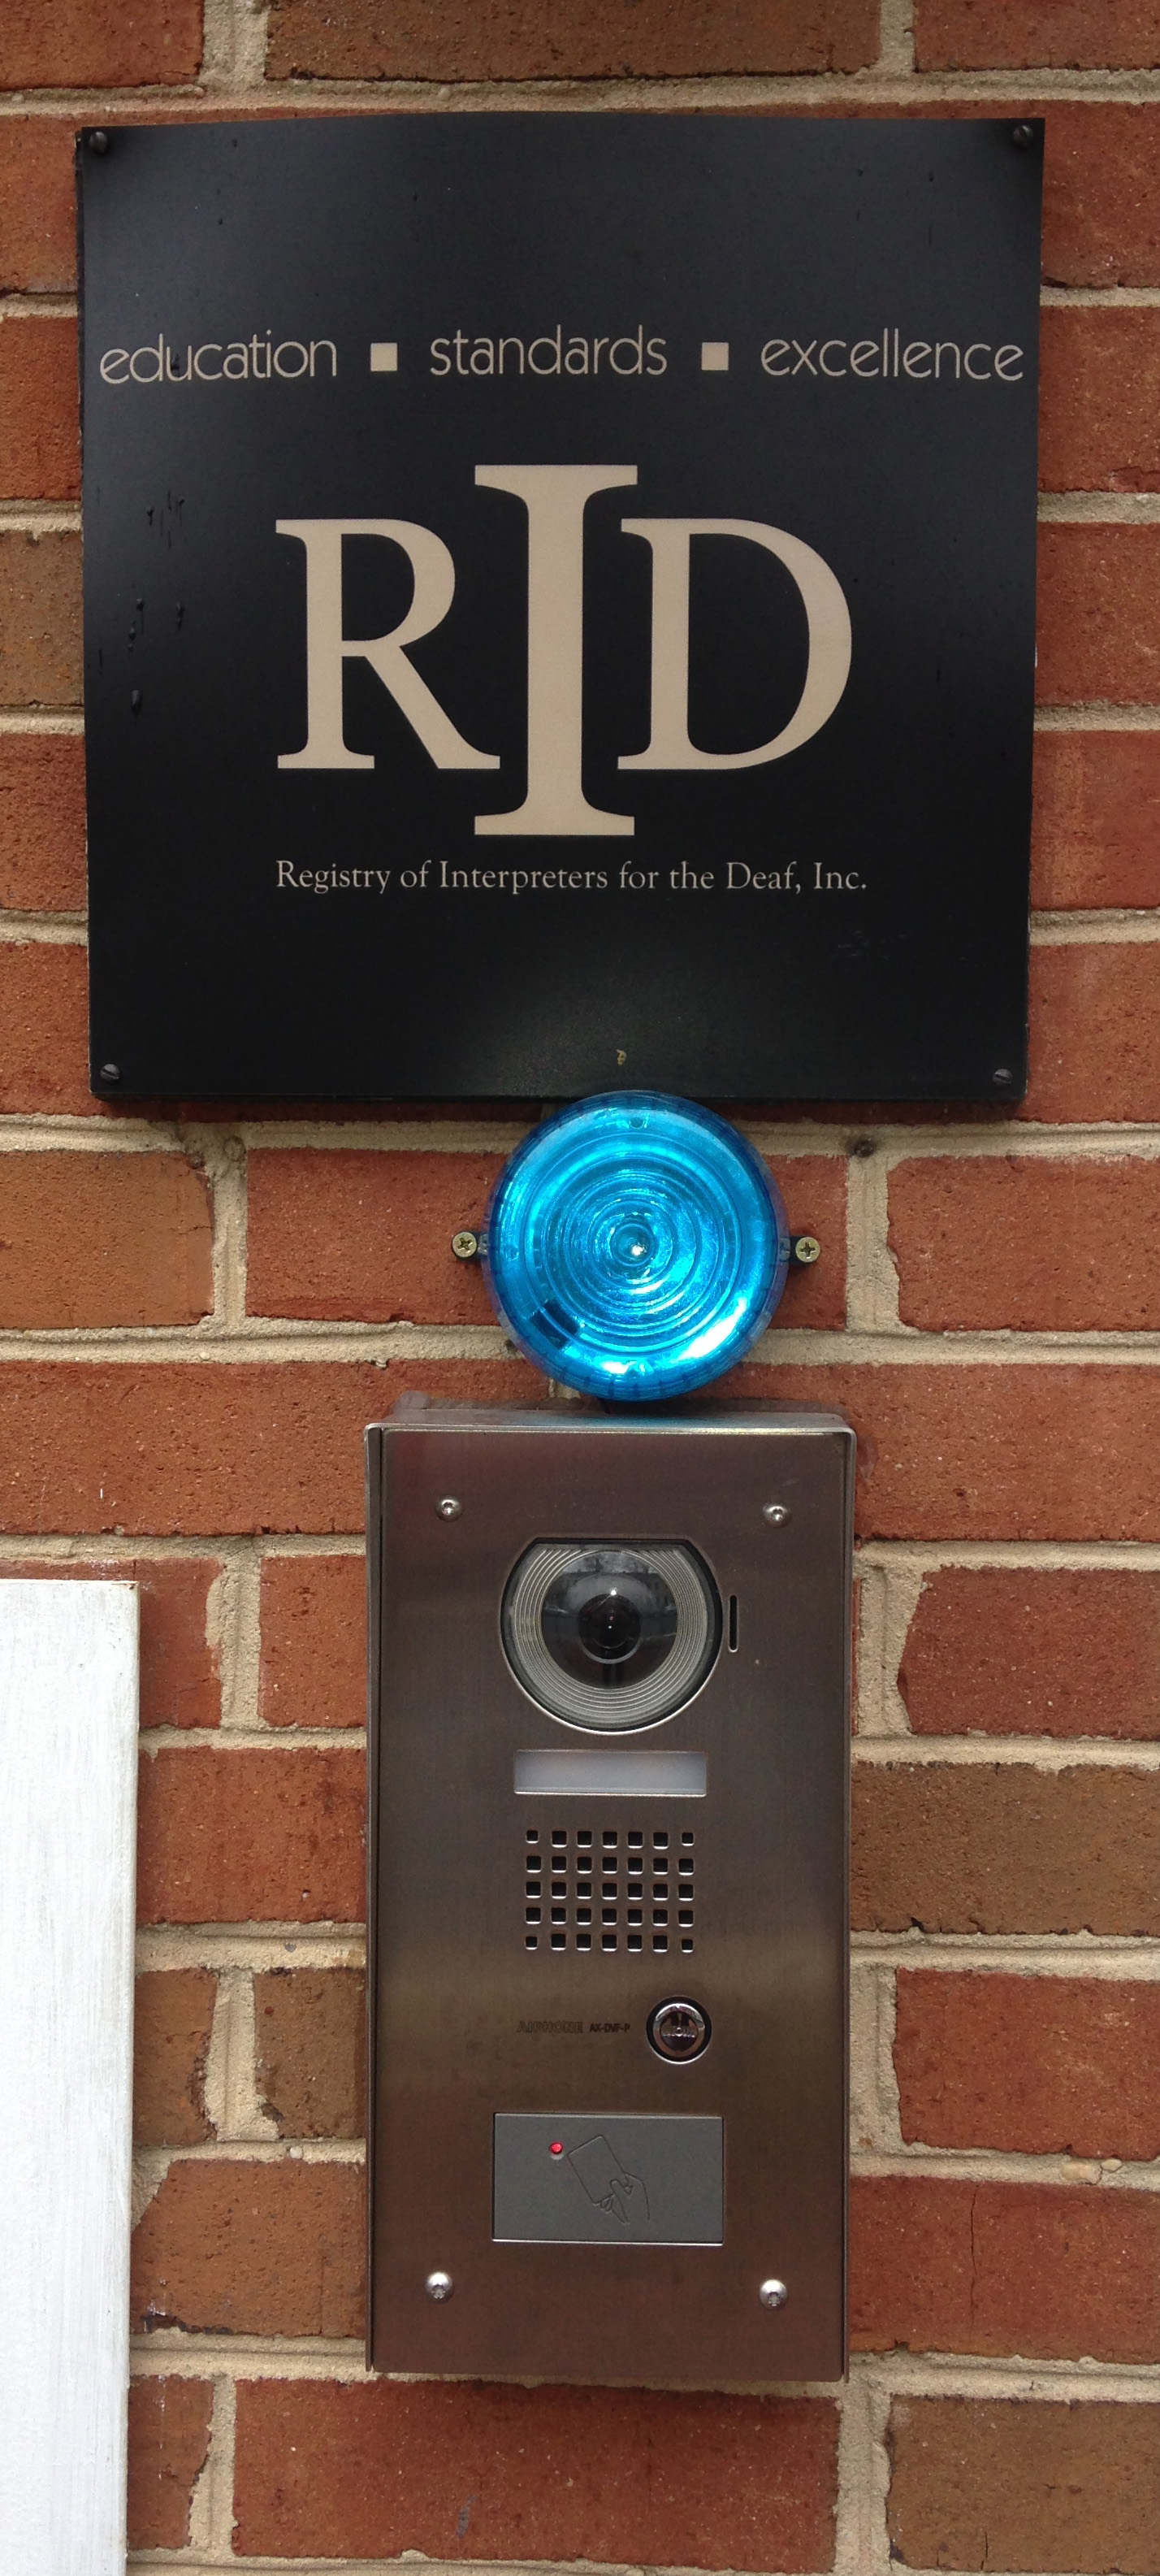 Outside view of new intercom